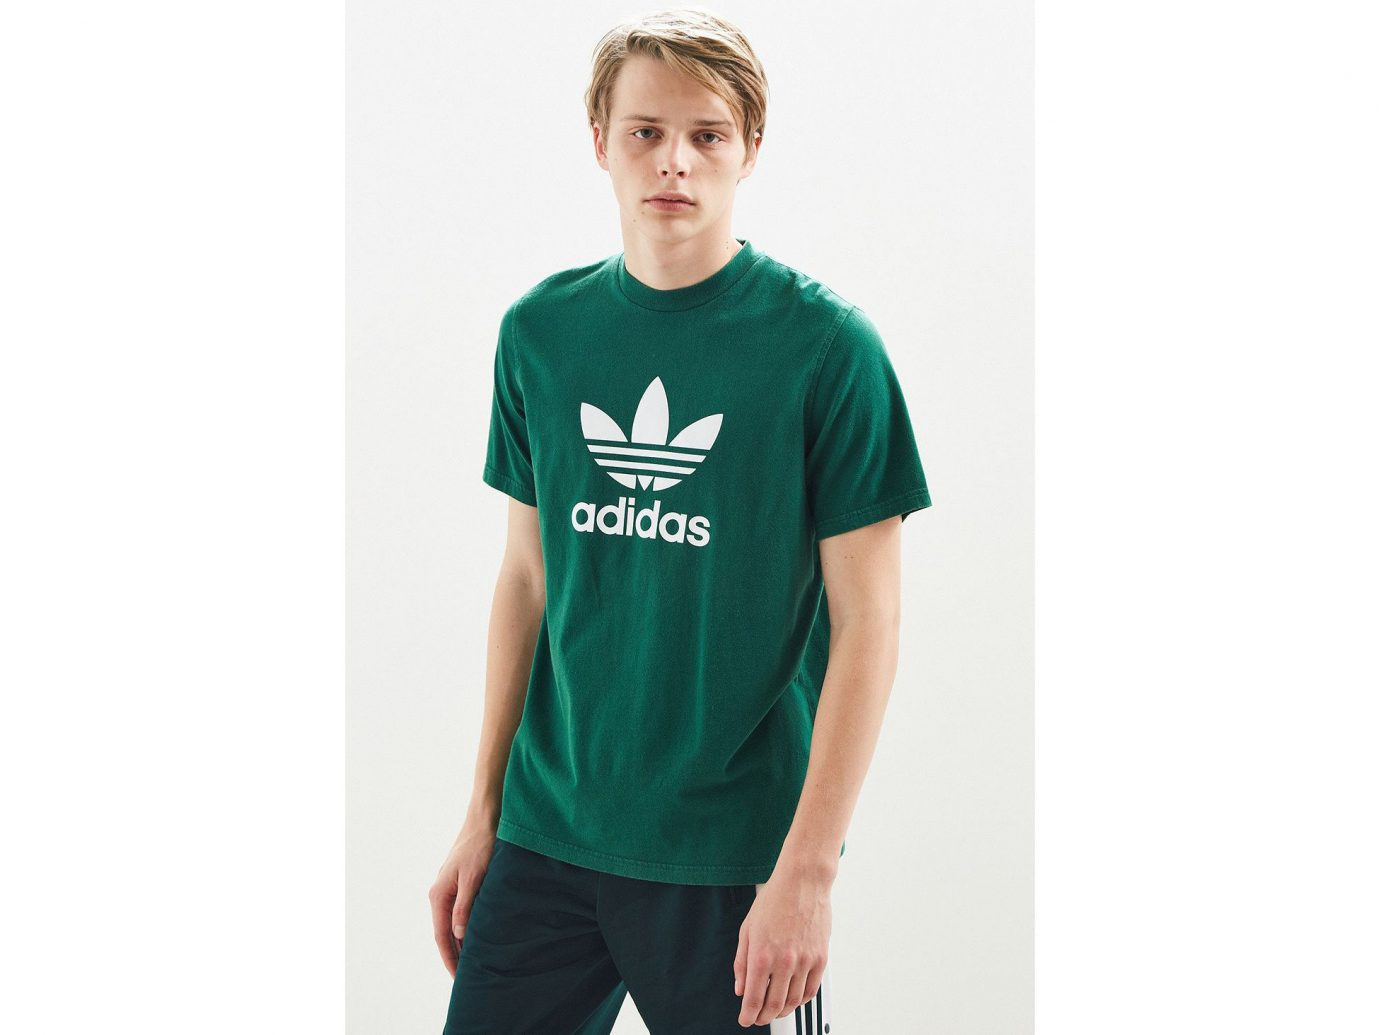 Spring Travel Style + Design Summer Travel Travel Shop t shirt person clothing green sleeve young boy standing posing jersey shoulder sportswear neck product font long sleeved t shirt male